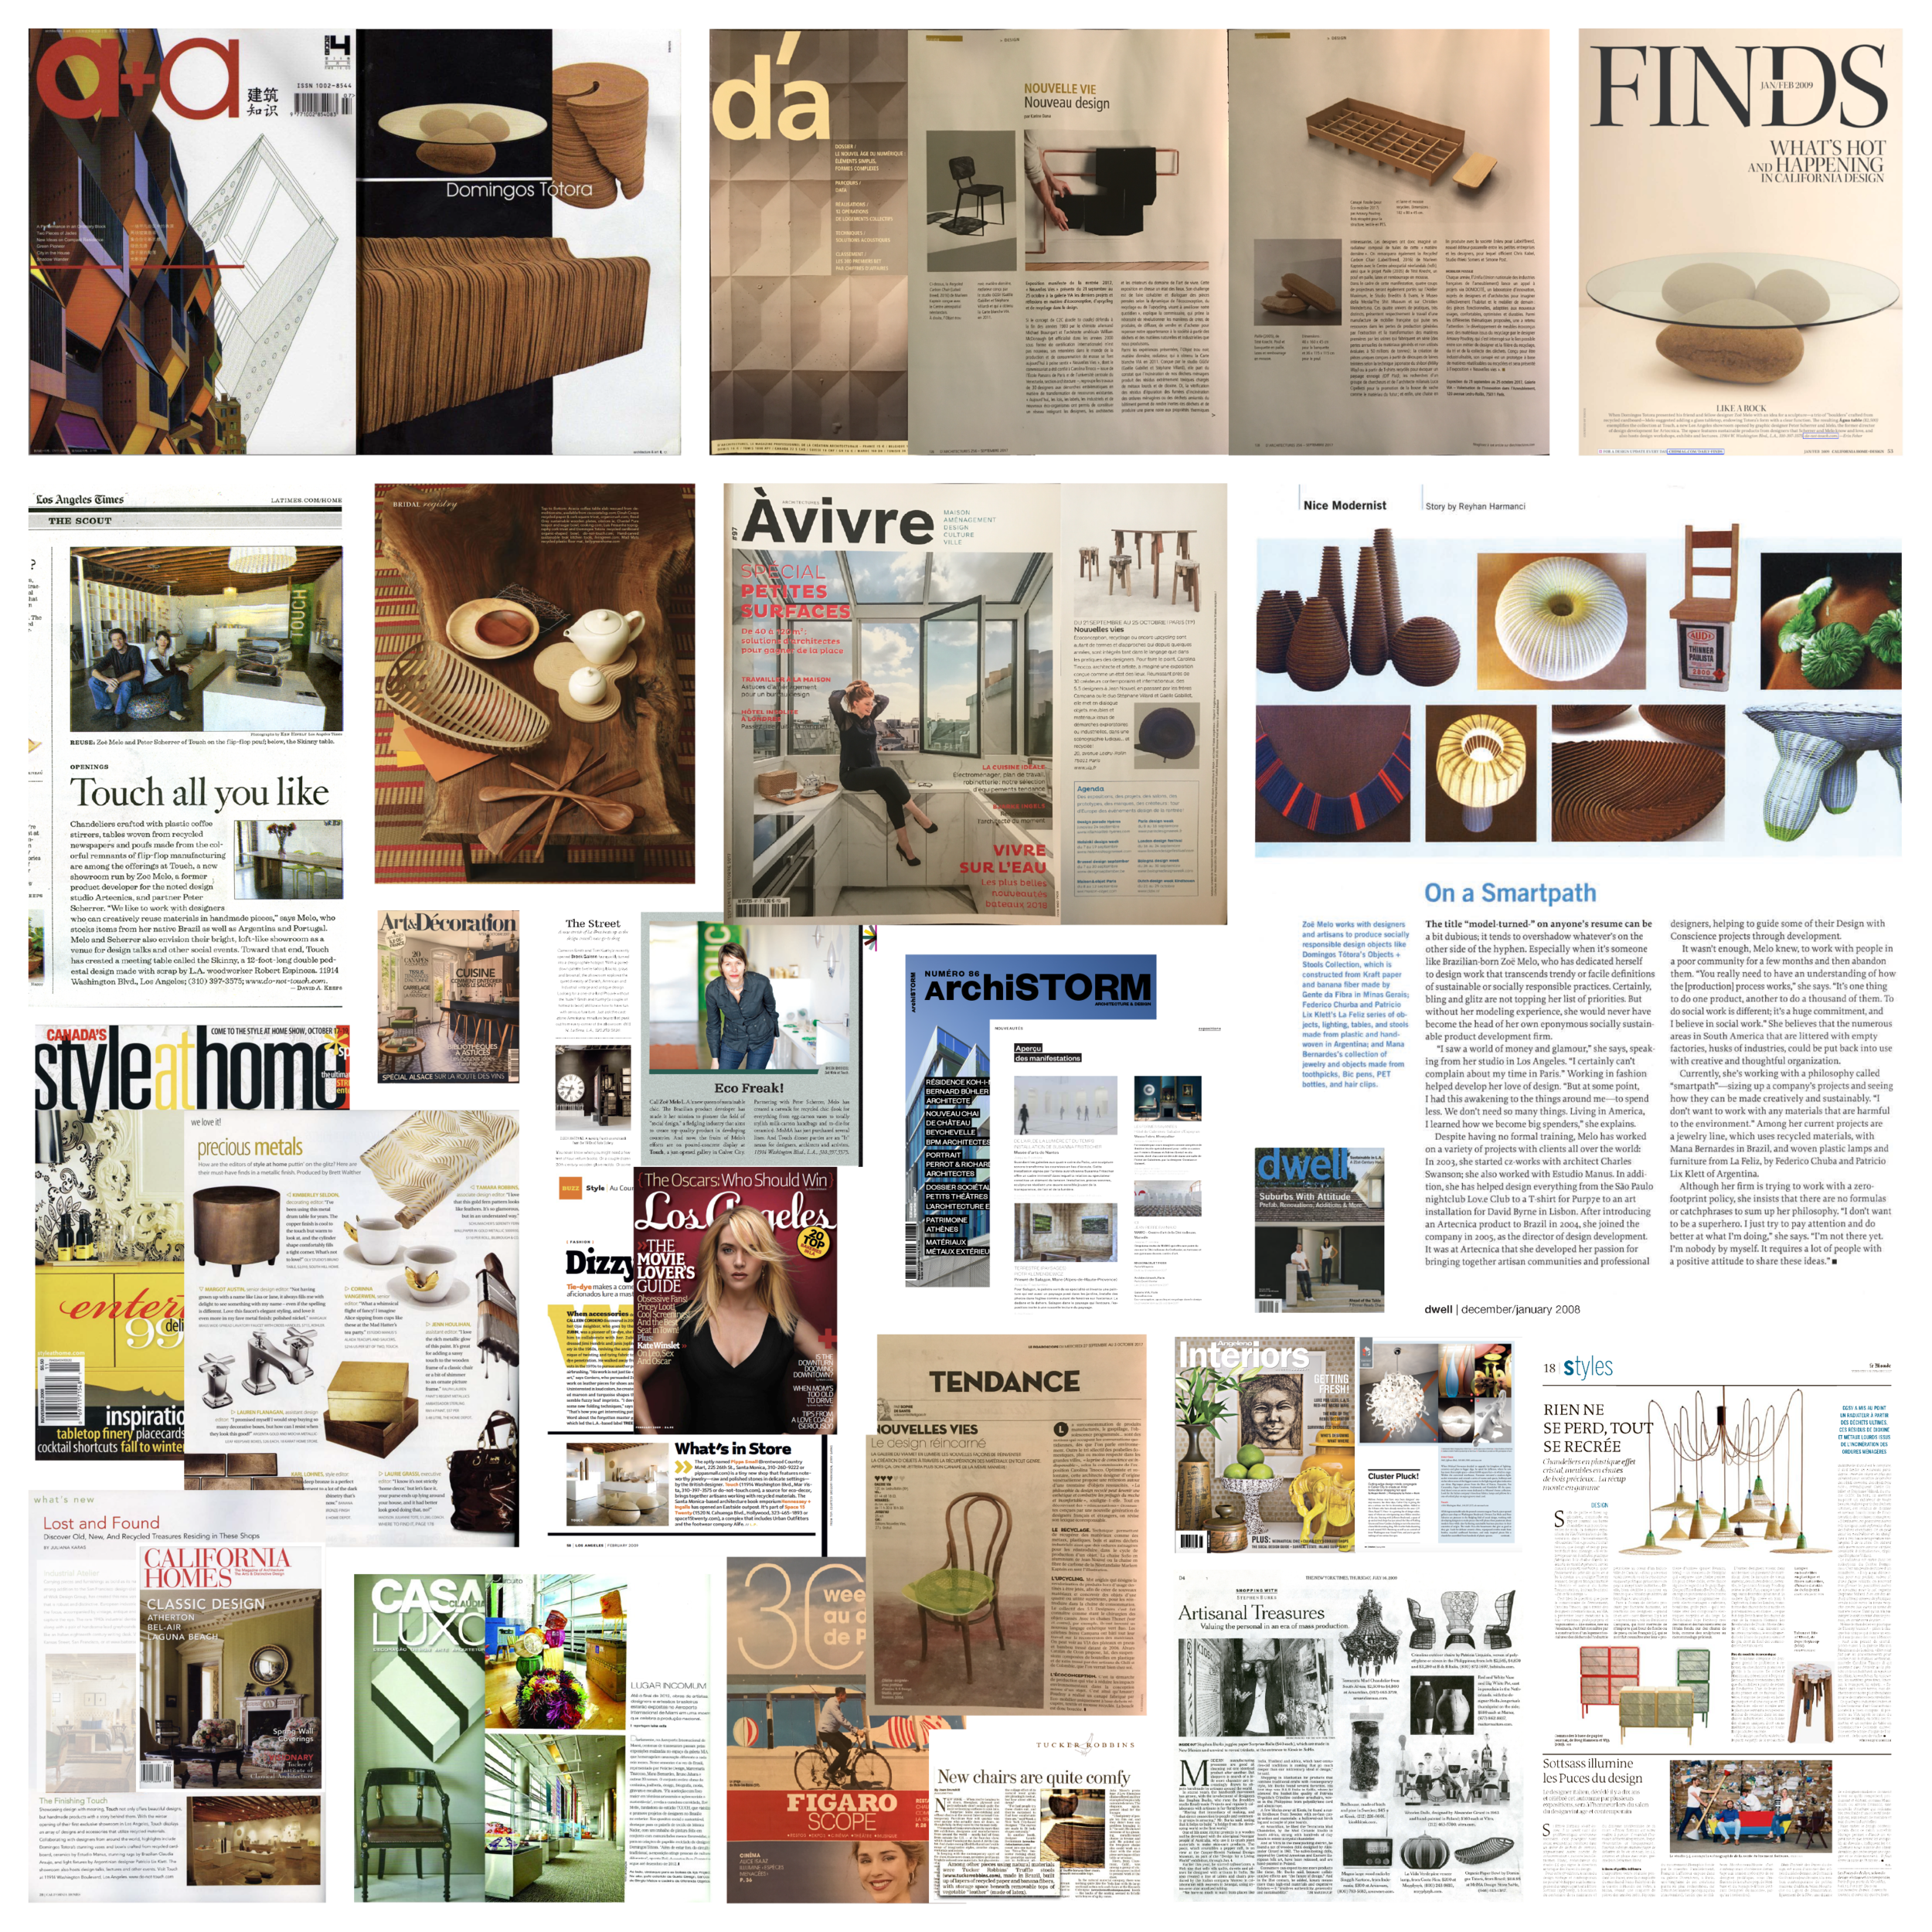 Press - Our team, products & services have appeared in leading design magazines from around the globe. Much gratitude to our collaborators & clients for the support and trust in taking this amazing journey together. For press inquiries, please get in touch.